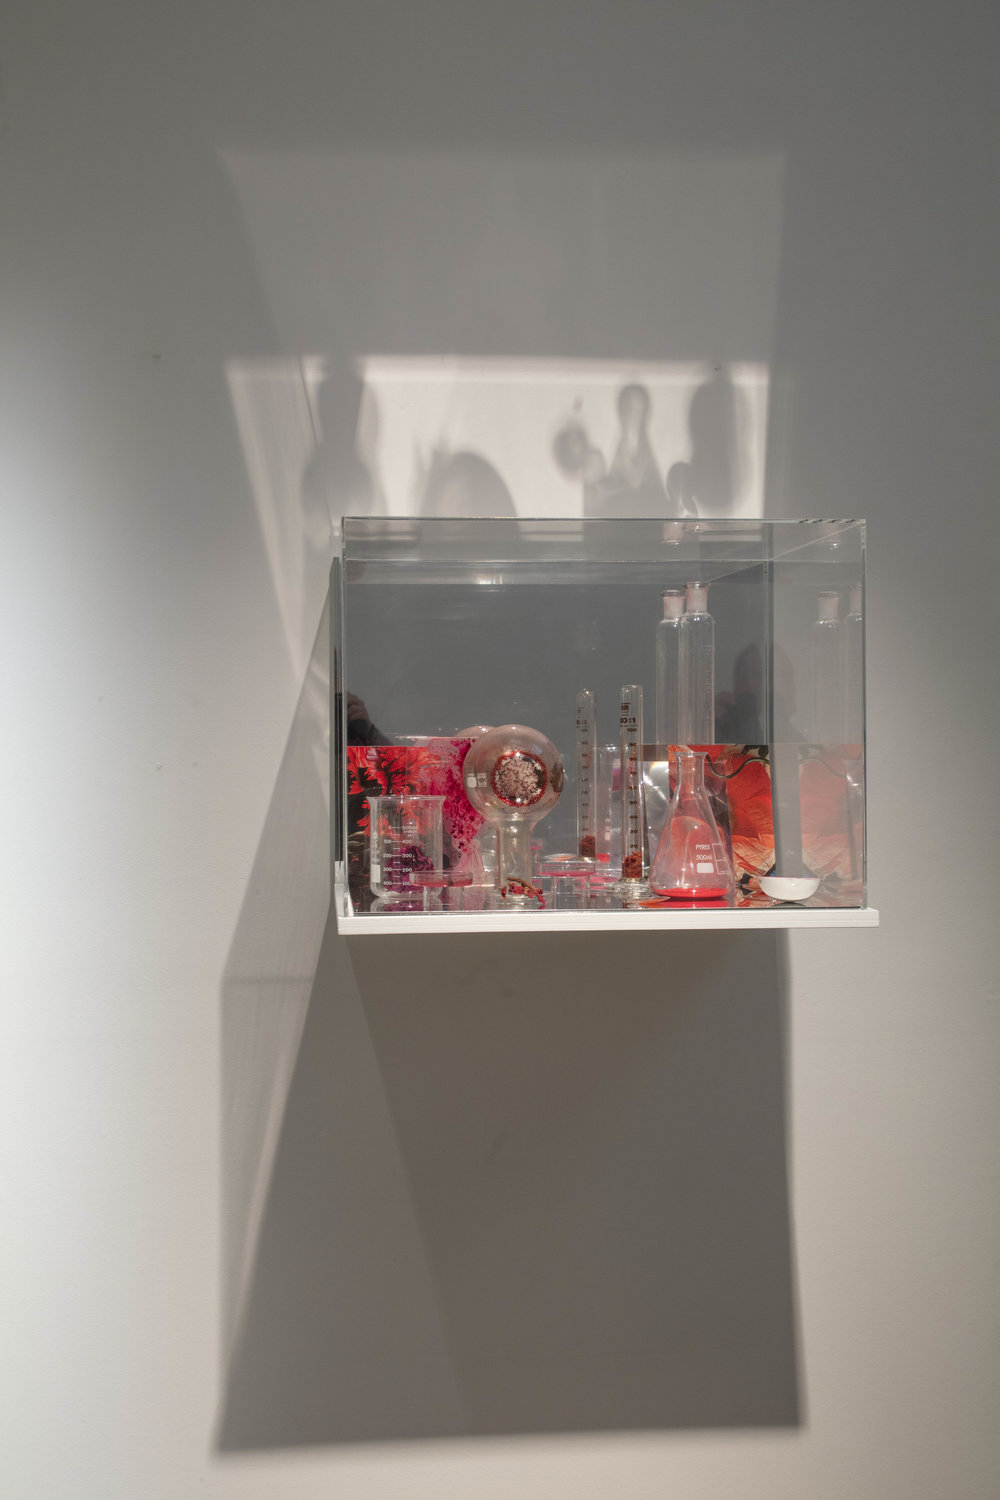 JANET LAURENCE   What Colour is the Sacred? (Red)  2018 Plywood, acrylic, mirror, details of Davidsz de Heem 'Still life with flowers in a glass vase' 1650 printed on archival cotton rag, Oil glaze on acrylic, acrylic lens, pigment, scientific glass, dried madder root, dried rose specimen, vandanite  45 x 60 x 45 cm